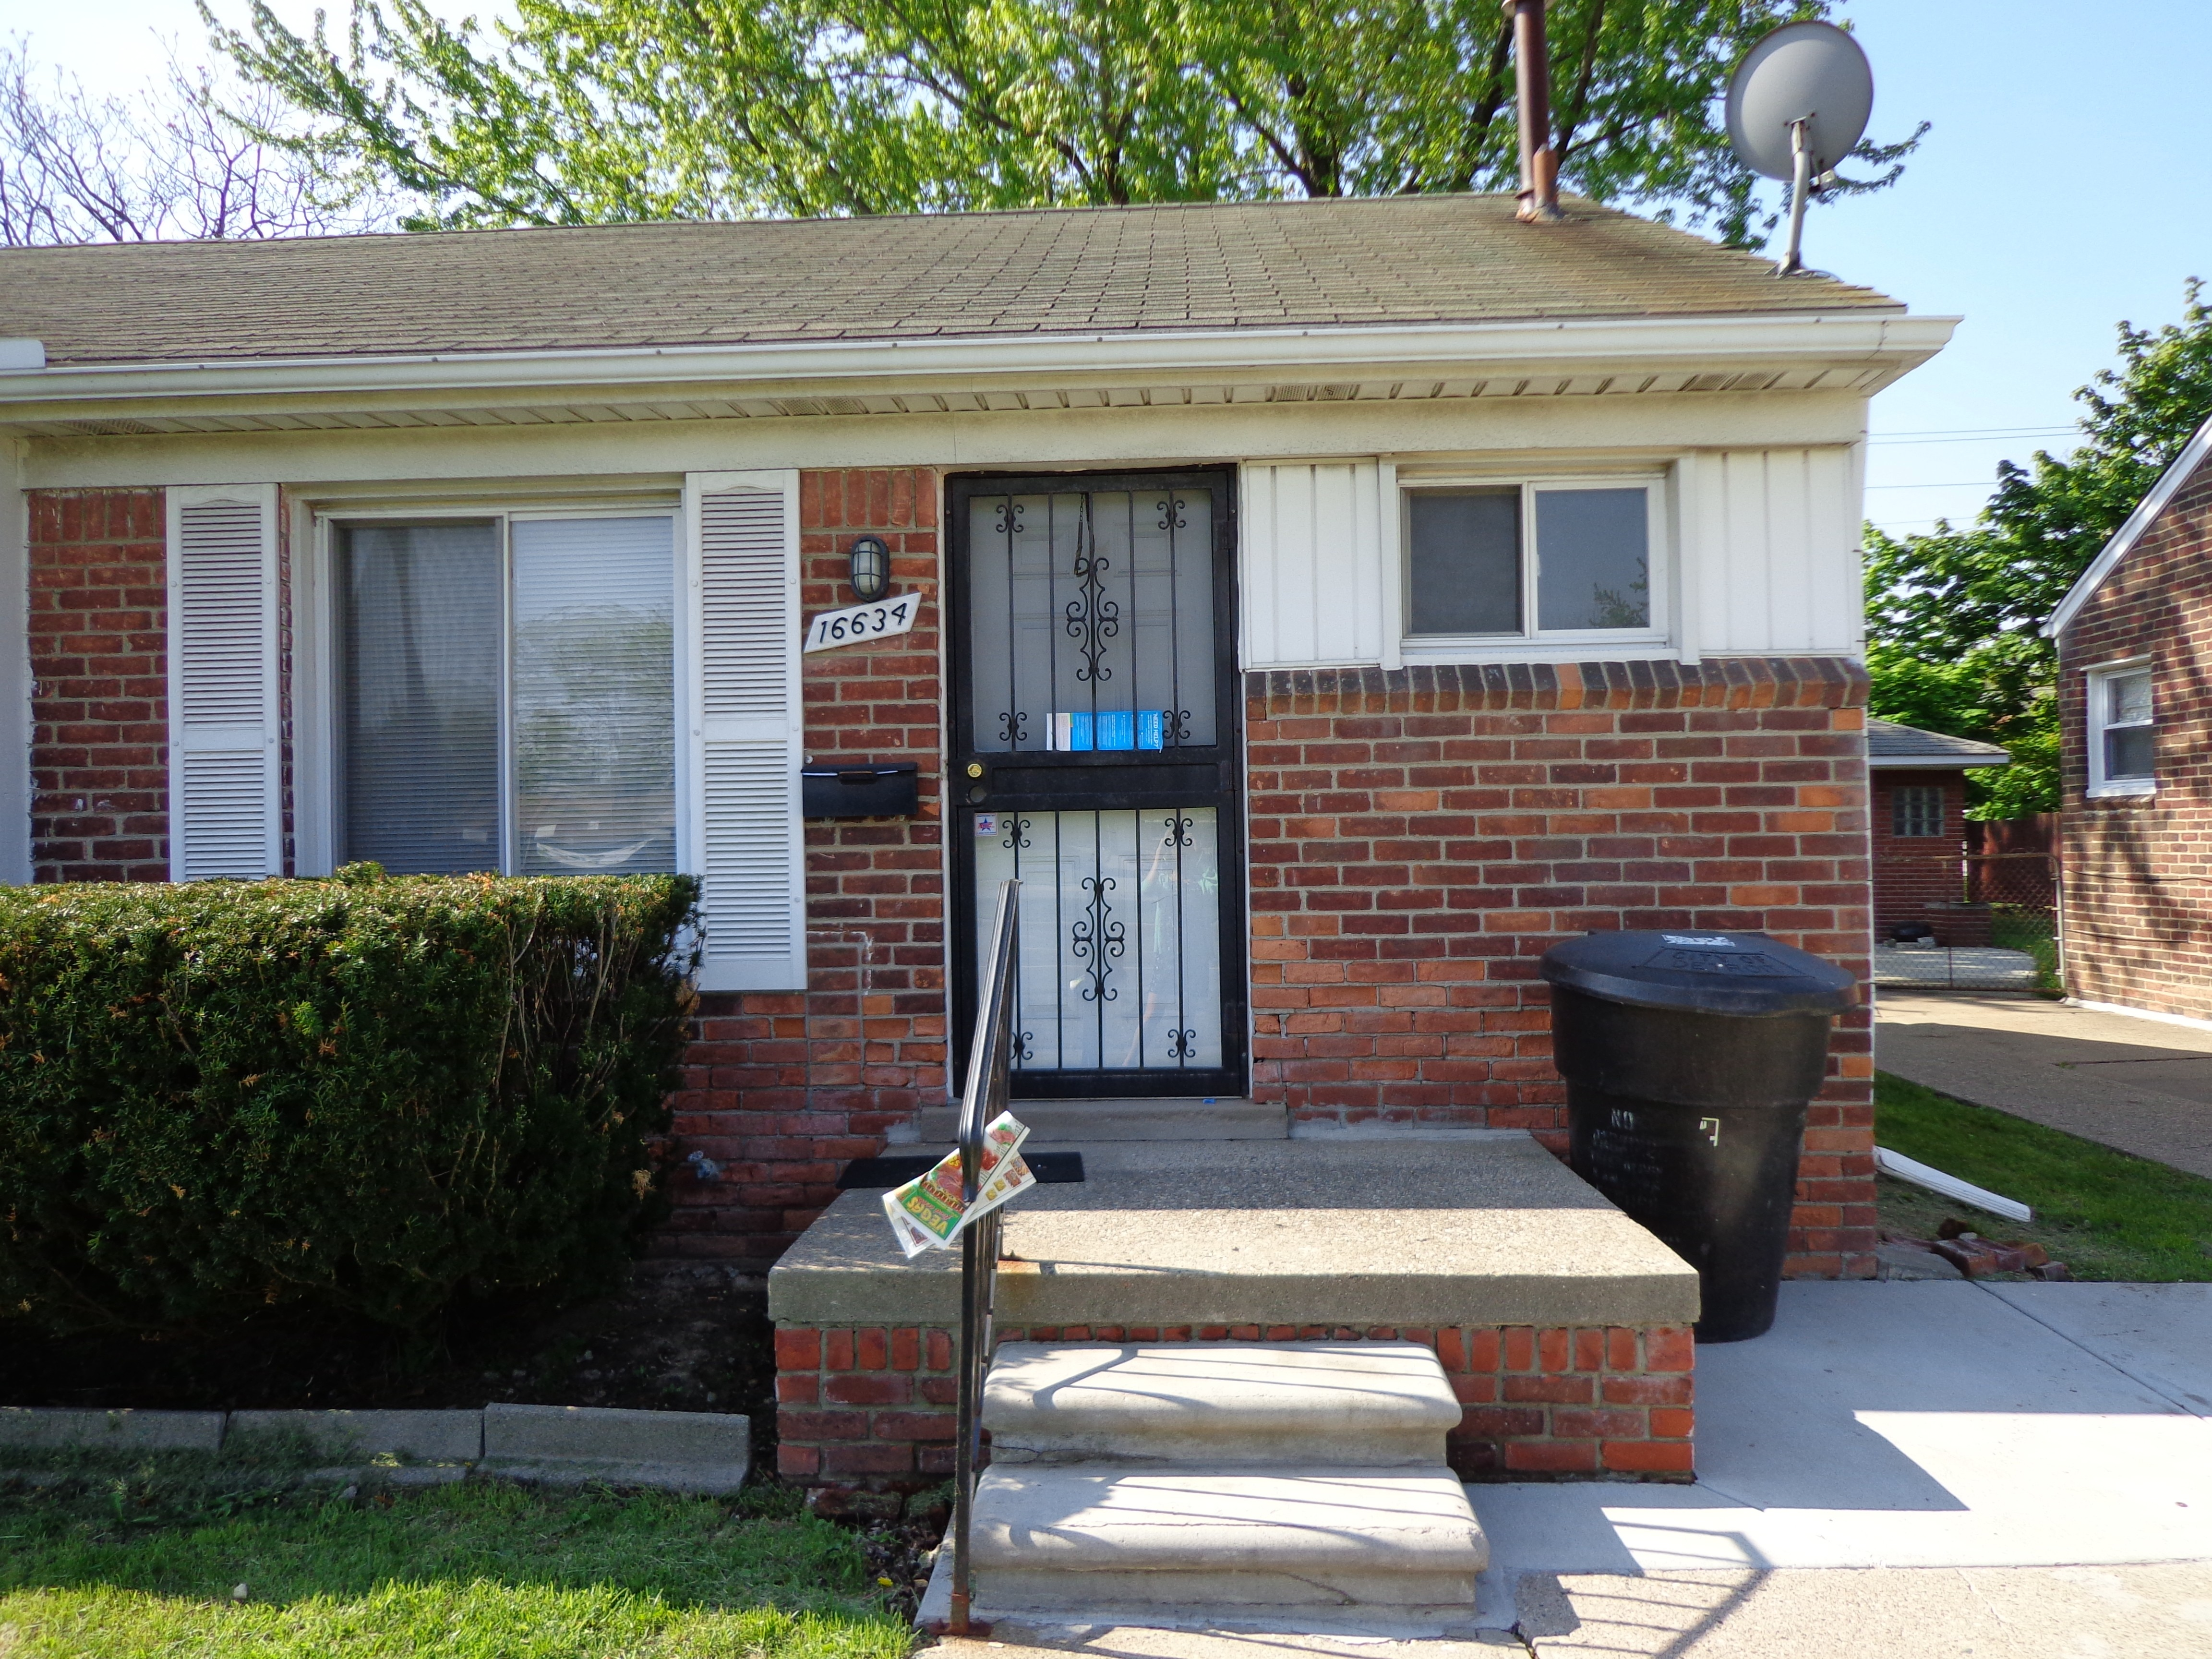 16634 W 8 Mile Rd Detroit Mi 48205 1 Bedroom Apartment For Rent For 500 Month Zumper